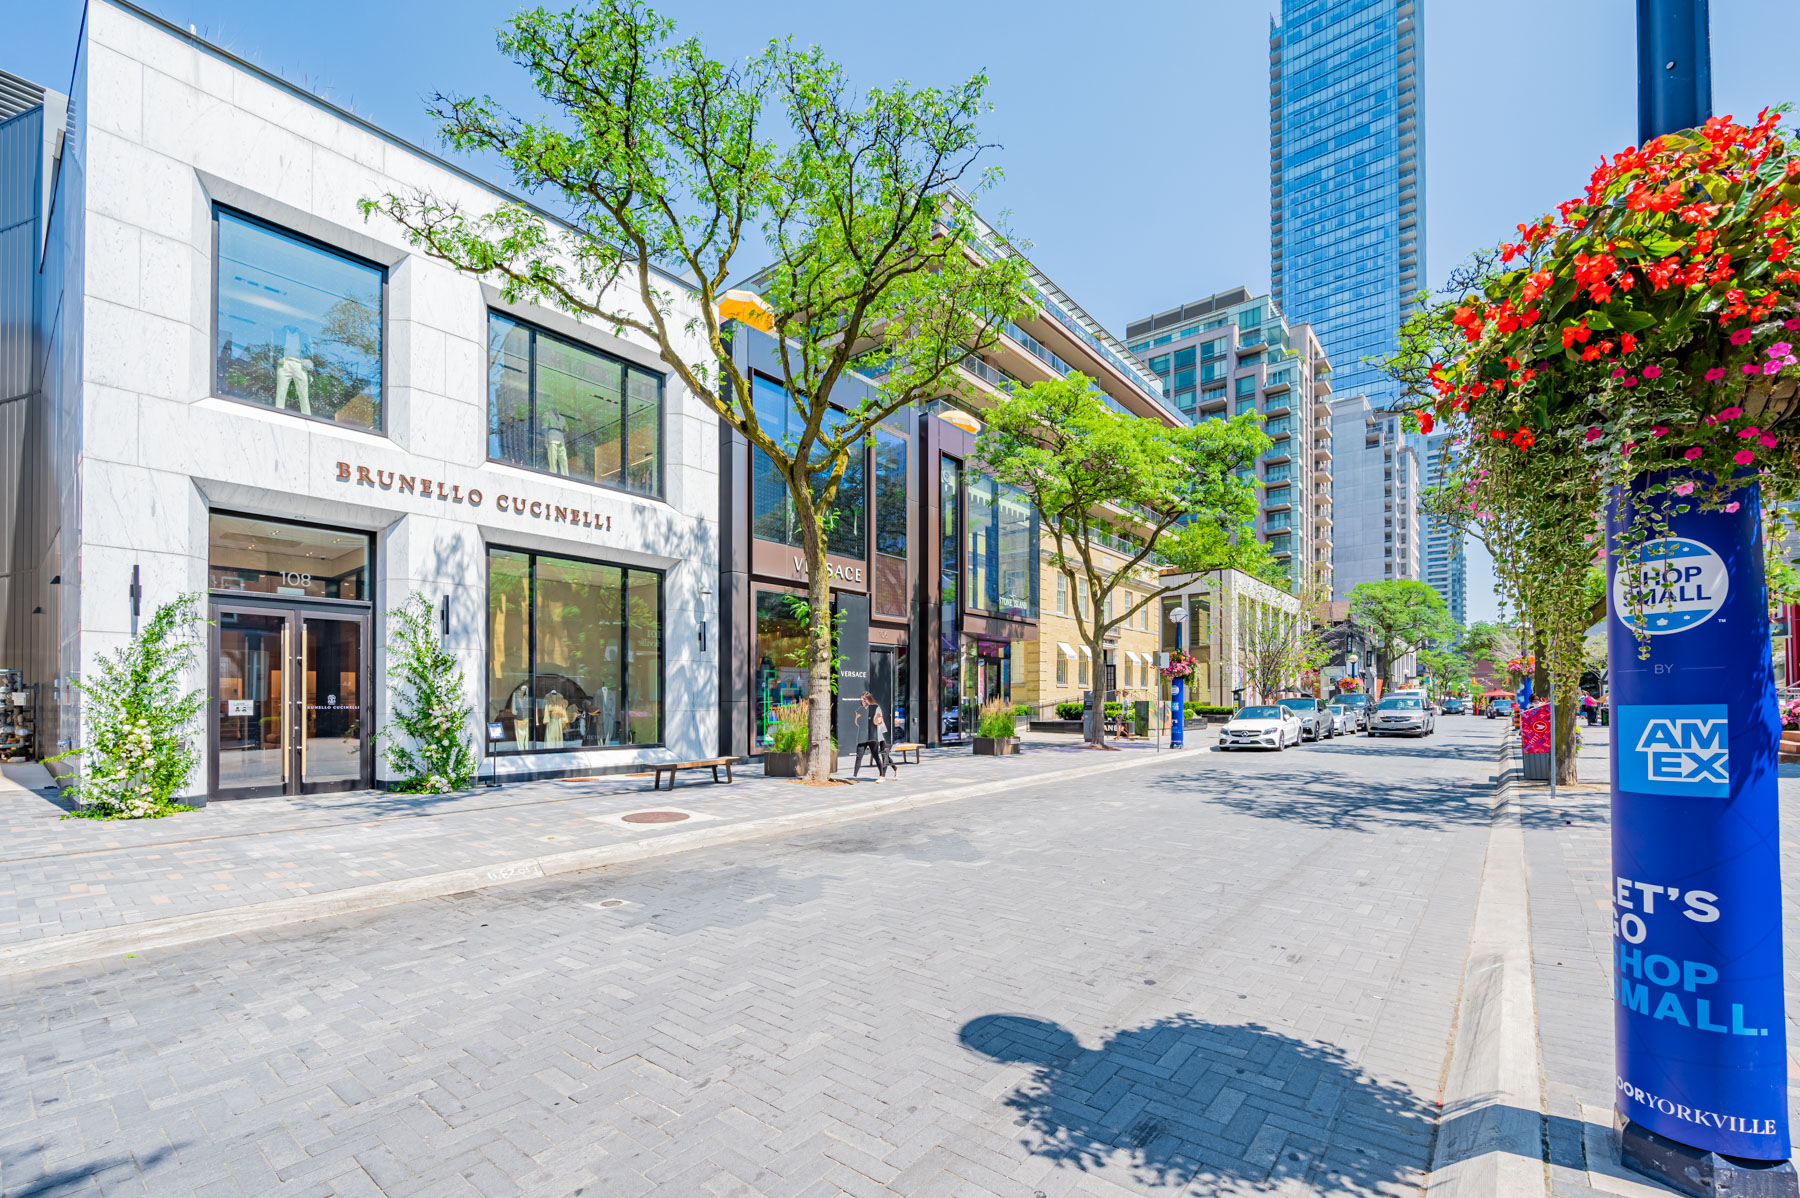 Brunello Cucinelli and Versace flagship storefronts in Yorkville, Toronto.